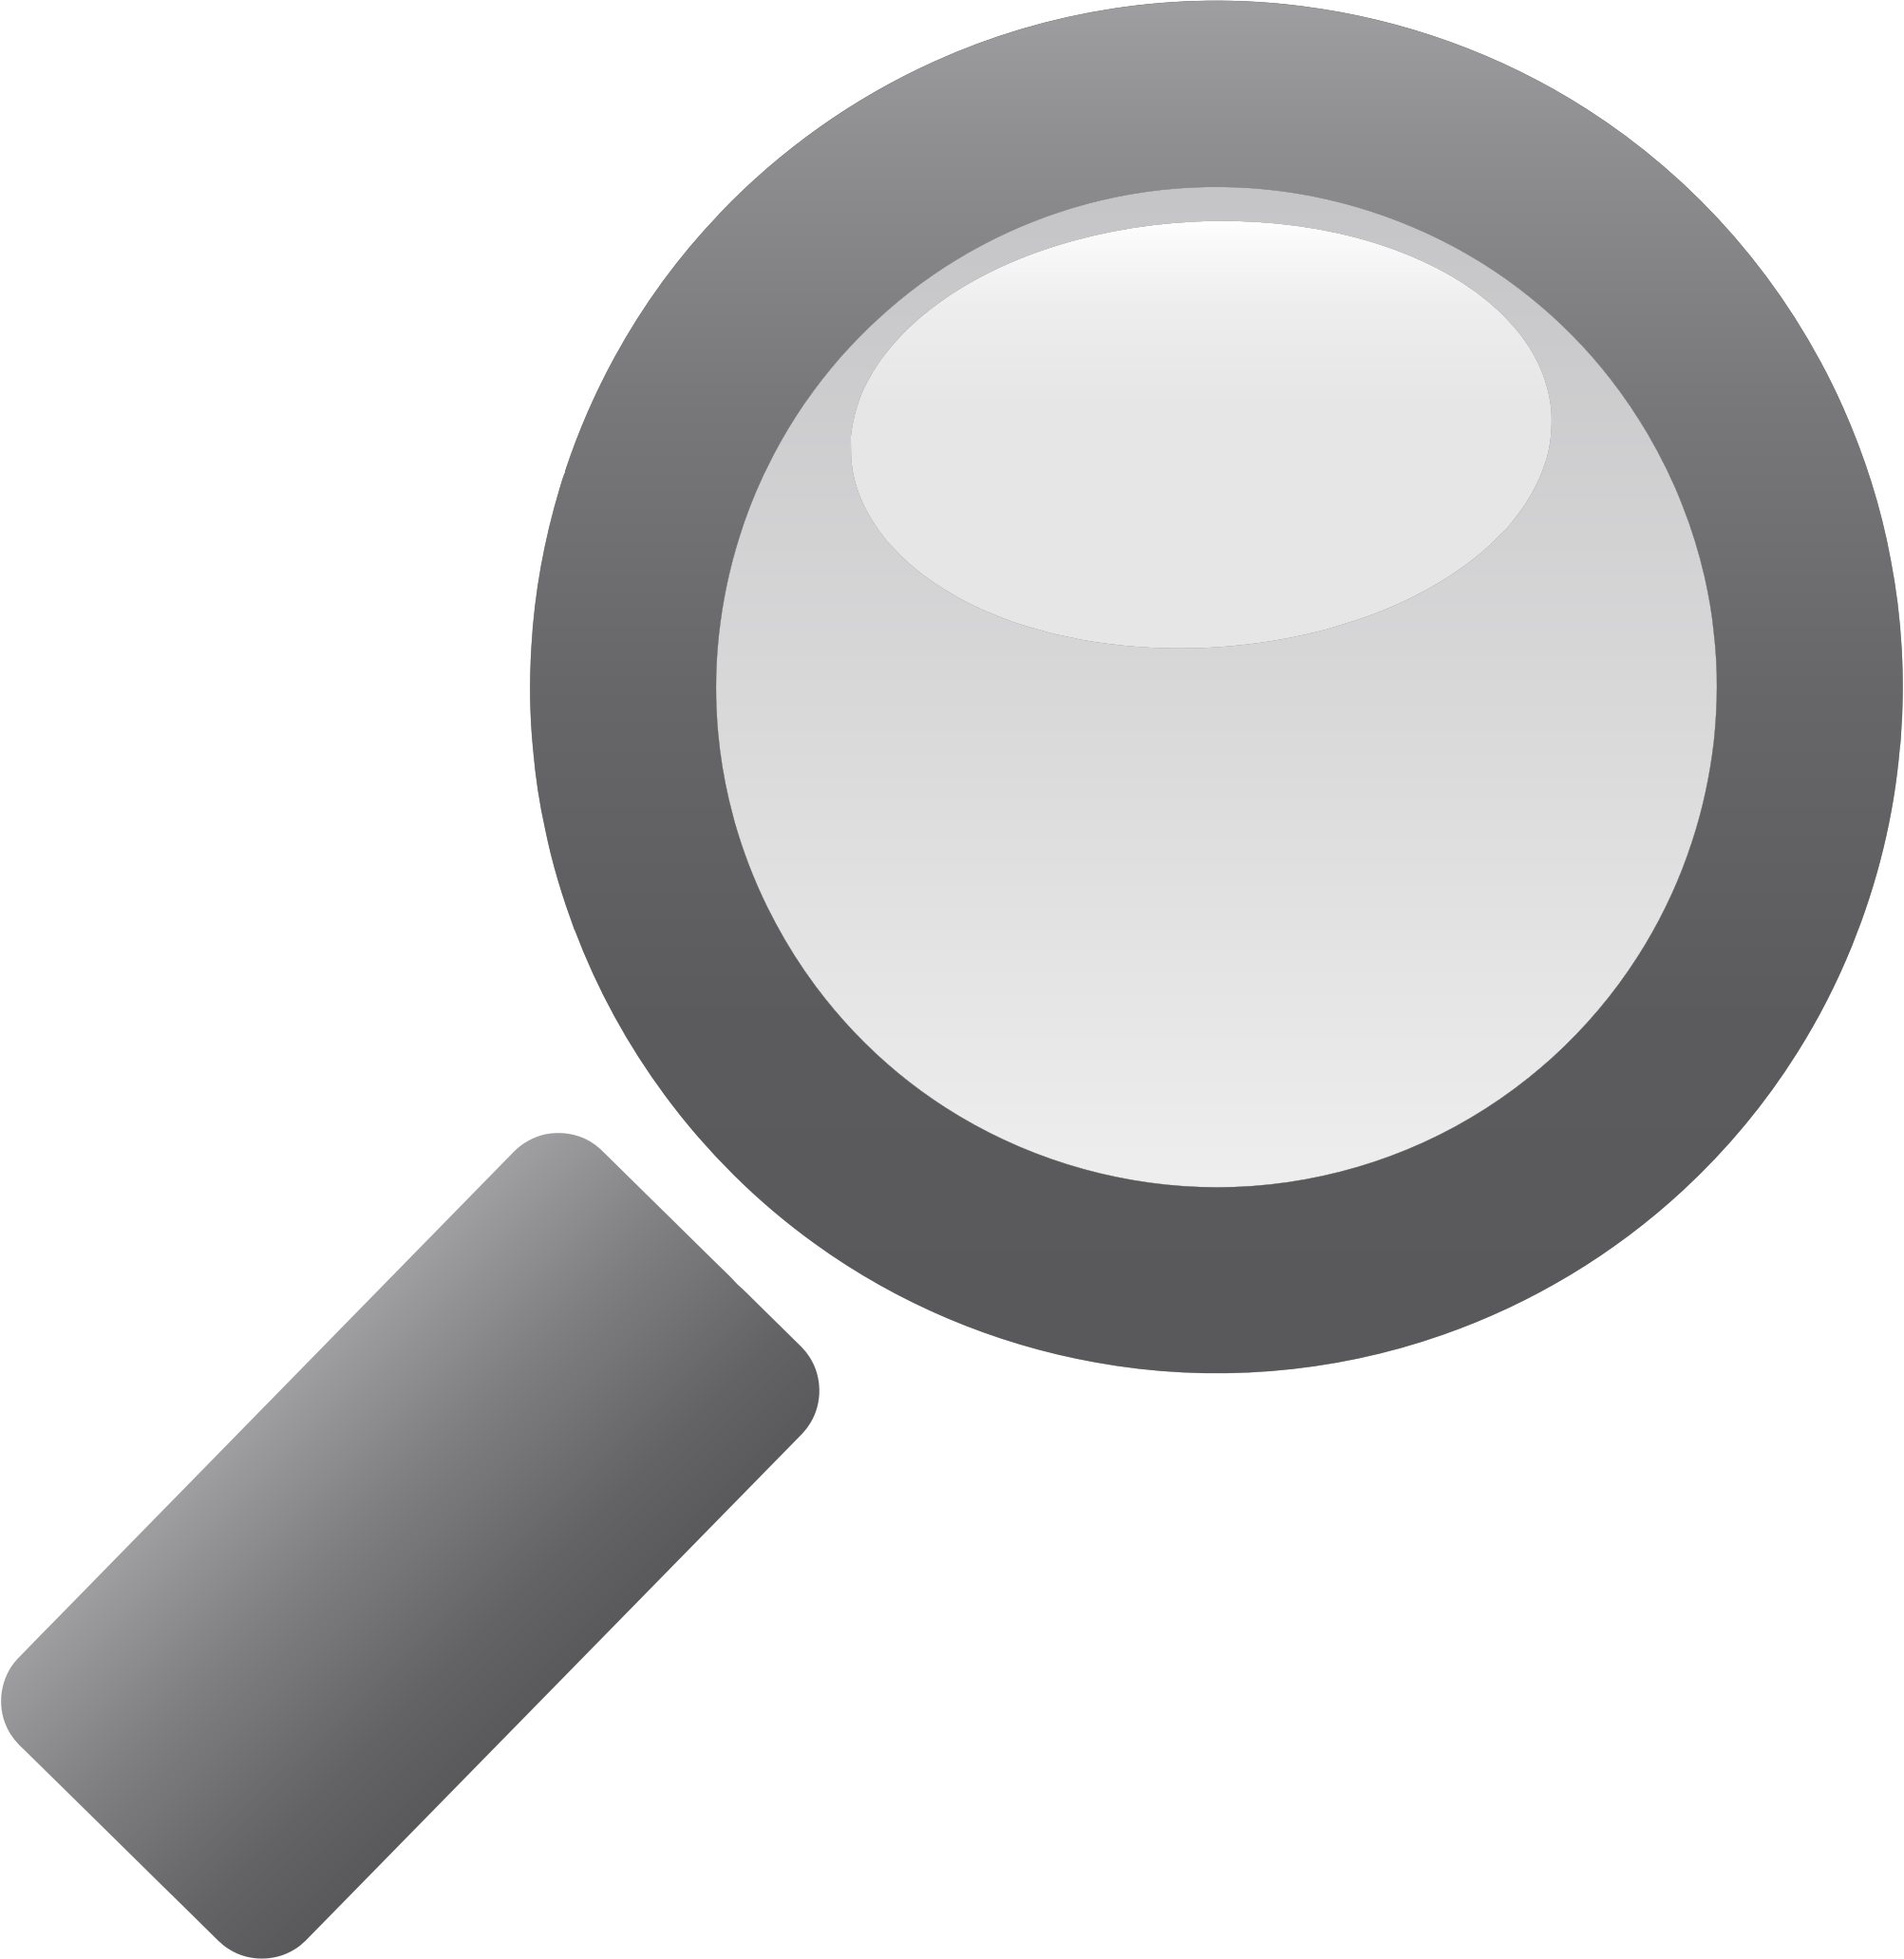 Magnifying Glass Icon by GDJ